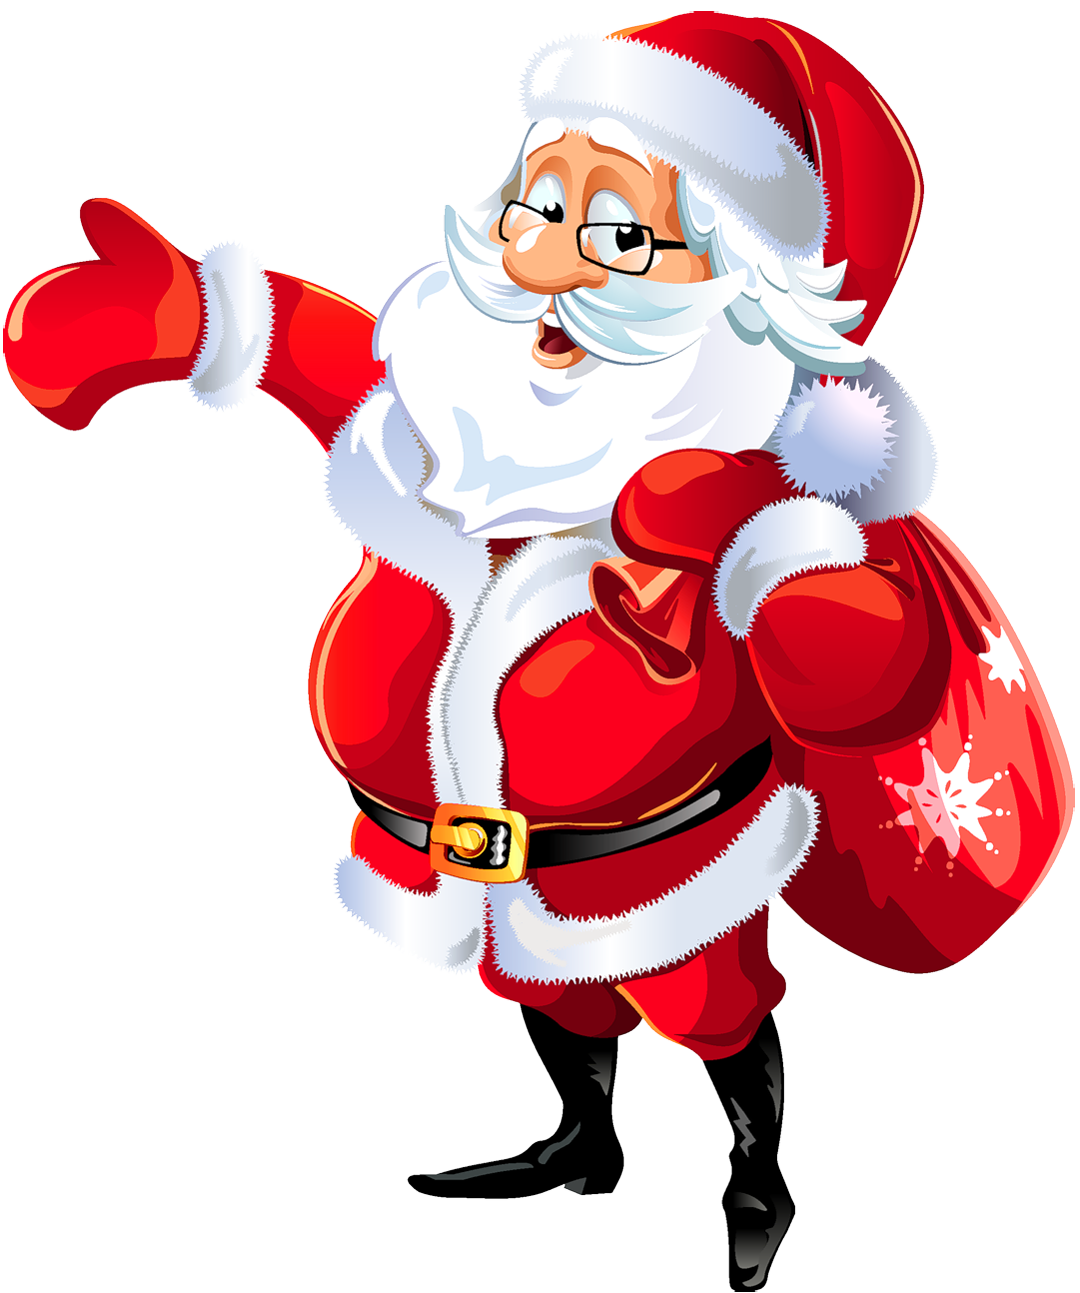 free clip art father christmas - photo #24